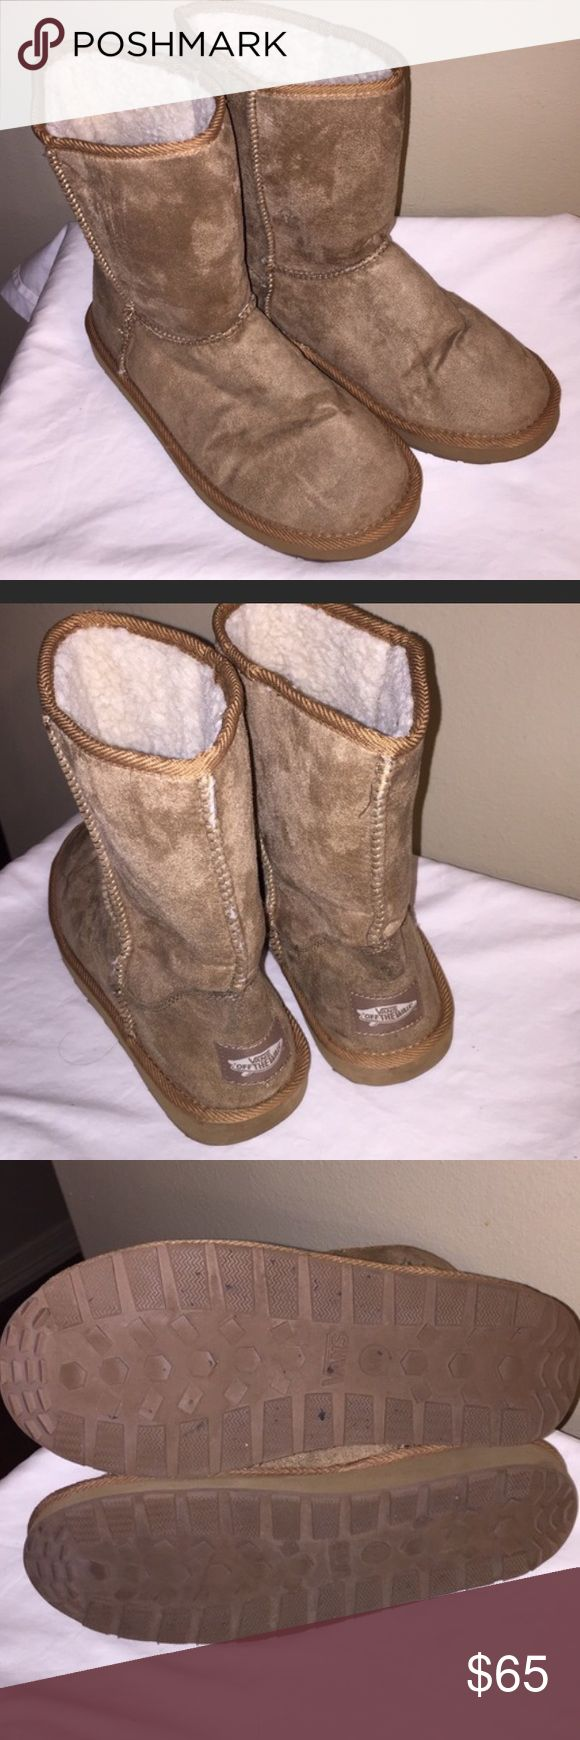 Vans Boots. Very nice Vans boots only used less than two times.  Boots excellent conditions.  no box Vans Shoes Winter & Rain Boots